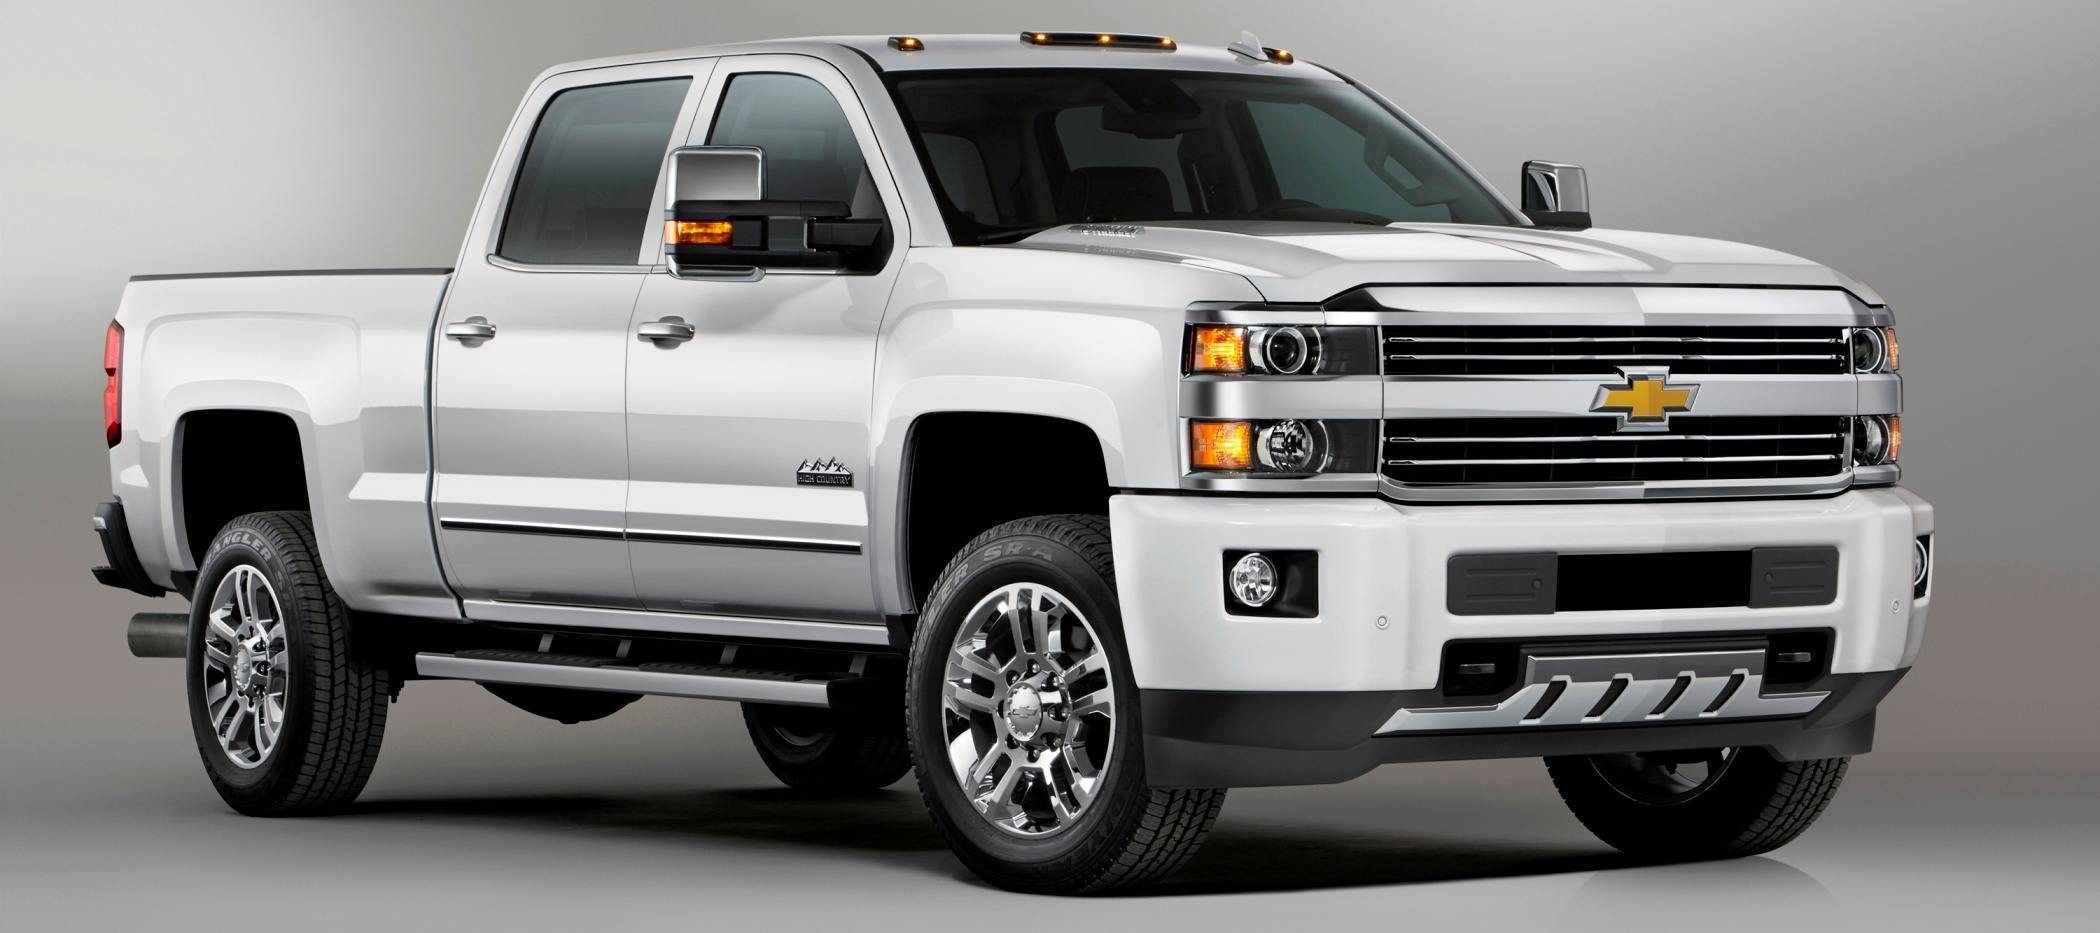 2014 Chevrolet Truck Better Than Ford Html Autos Weblog